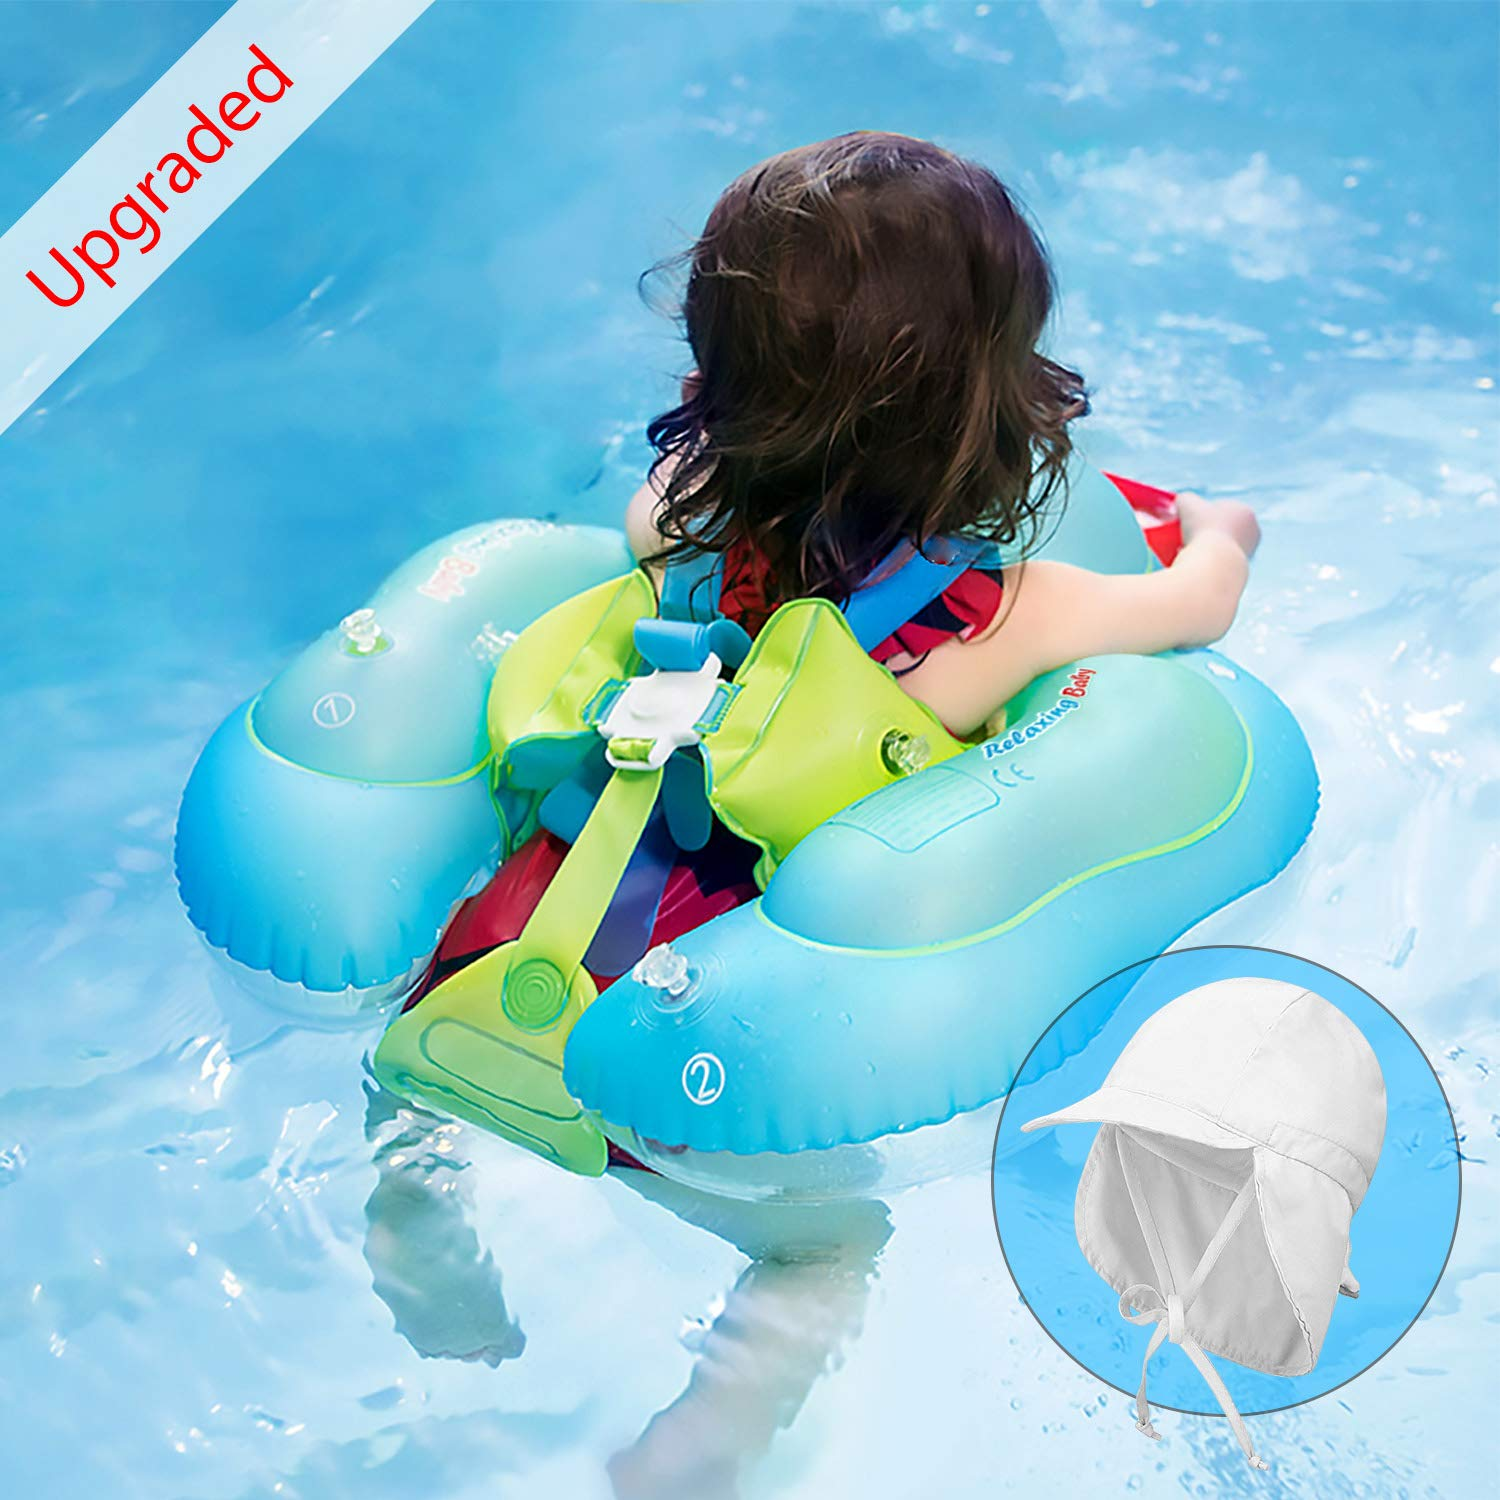 CHGeek [Upgraded] Baby Pool Float, Baby Swimming Float Safety Inflatable Floats Ring with Safety Belt Crotch Strap Suitable for 8-36 Months,Size L by CHGeek